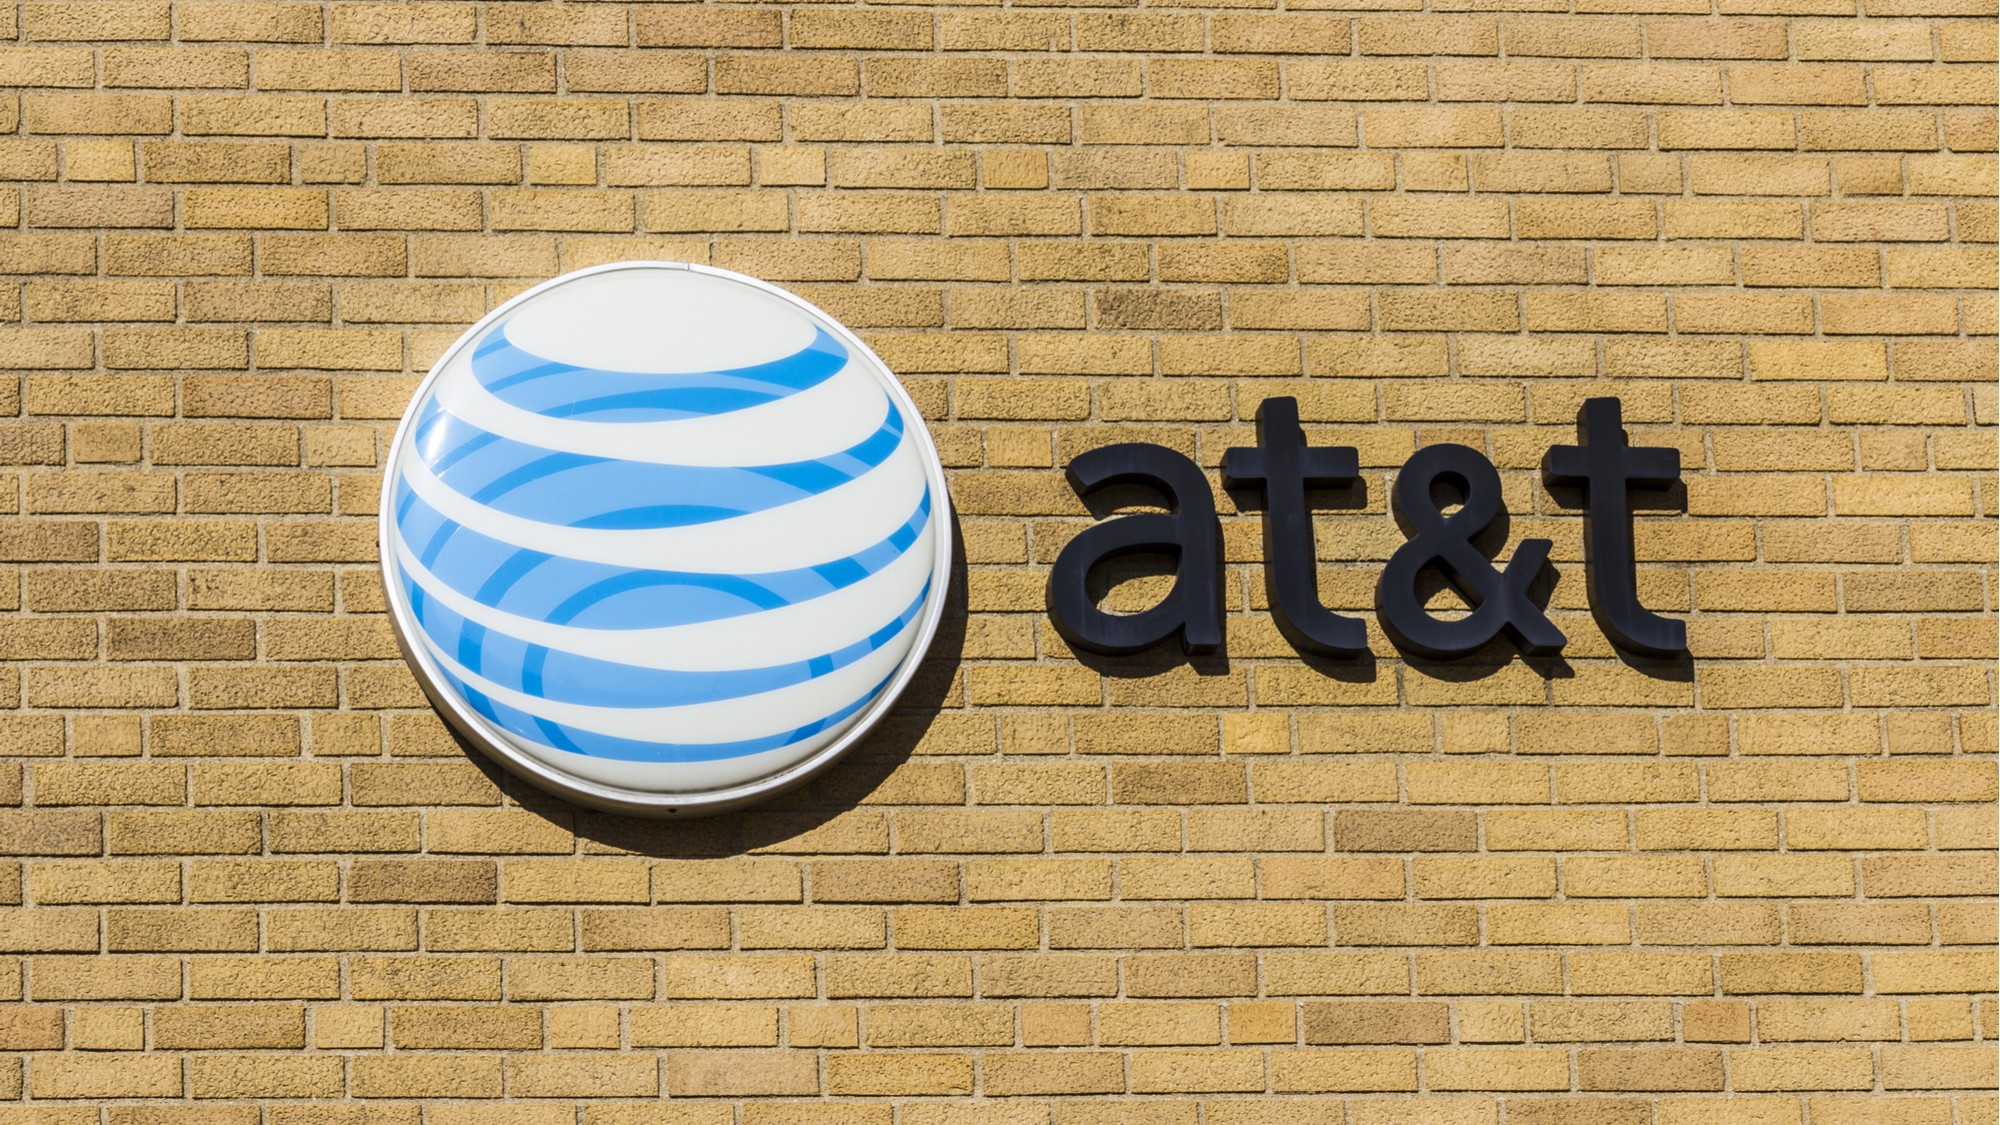 AT&T Jacks Up TV Prices Again After Merger, Despite